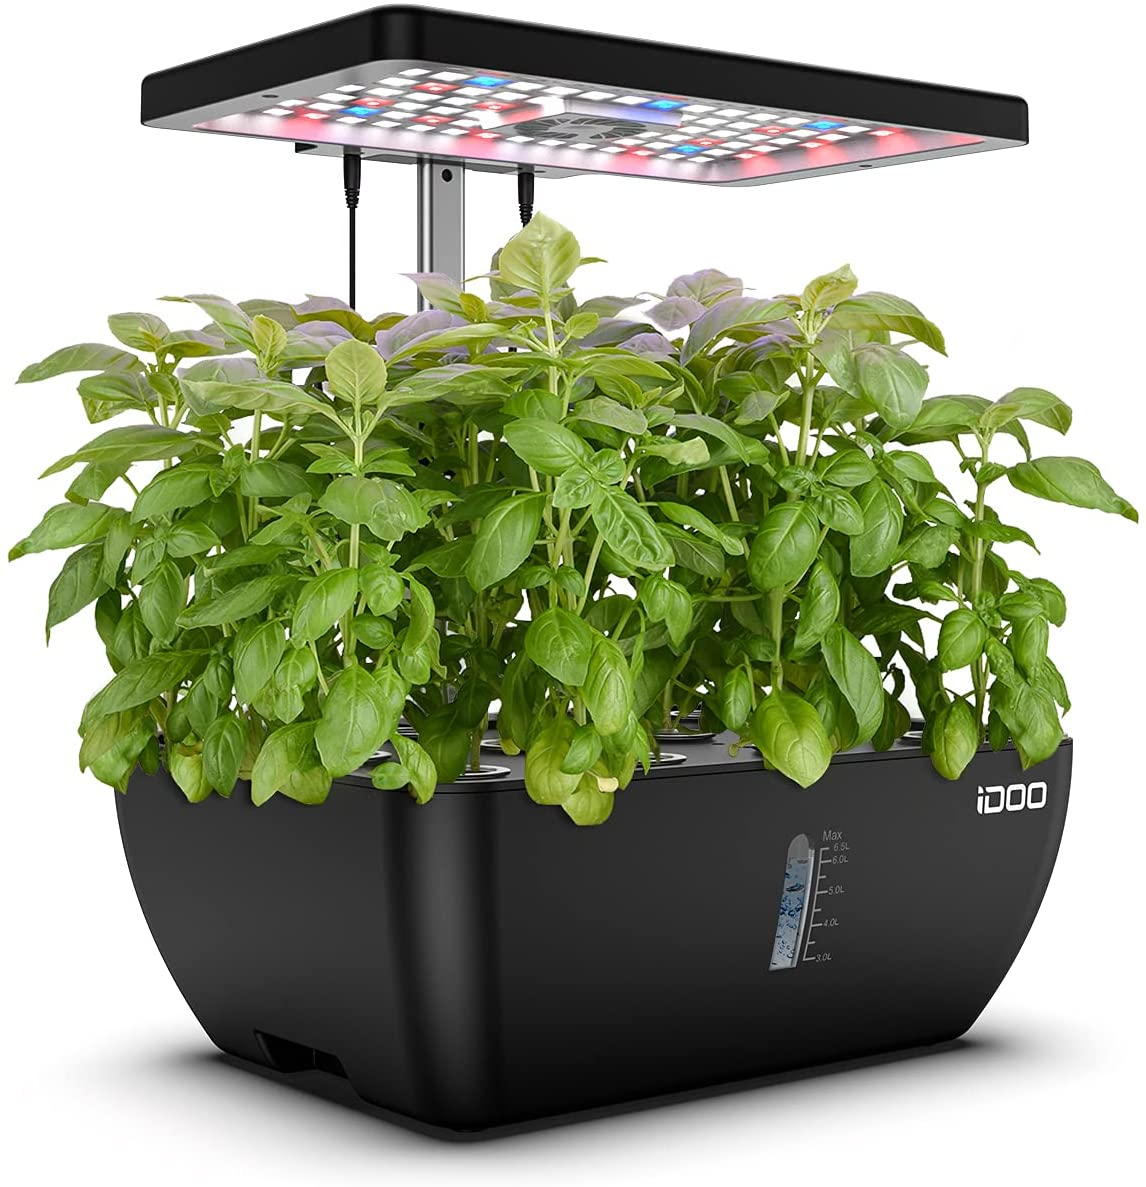 iDOO 12Pods Hydroponics Growing System, Indoor Herb Garden with 6.5L Water Tank, Plants Germination Kit with Pump System, Automatic Timer, Grow Light, Height Adjustable for Home Kitchen Gardening